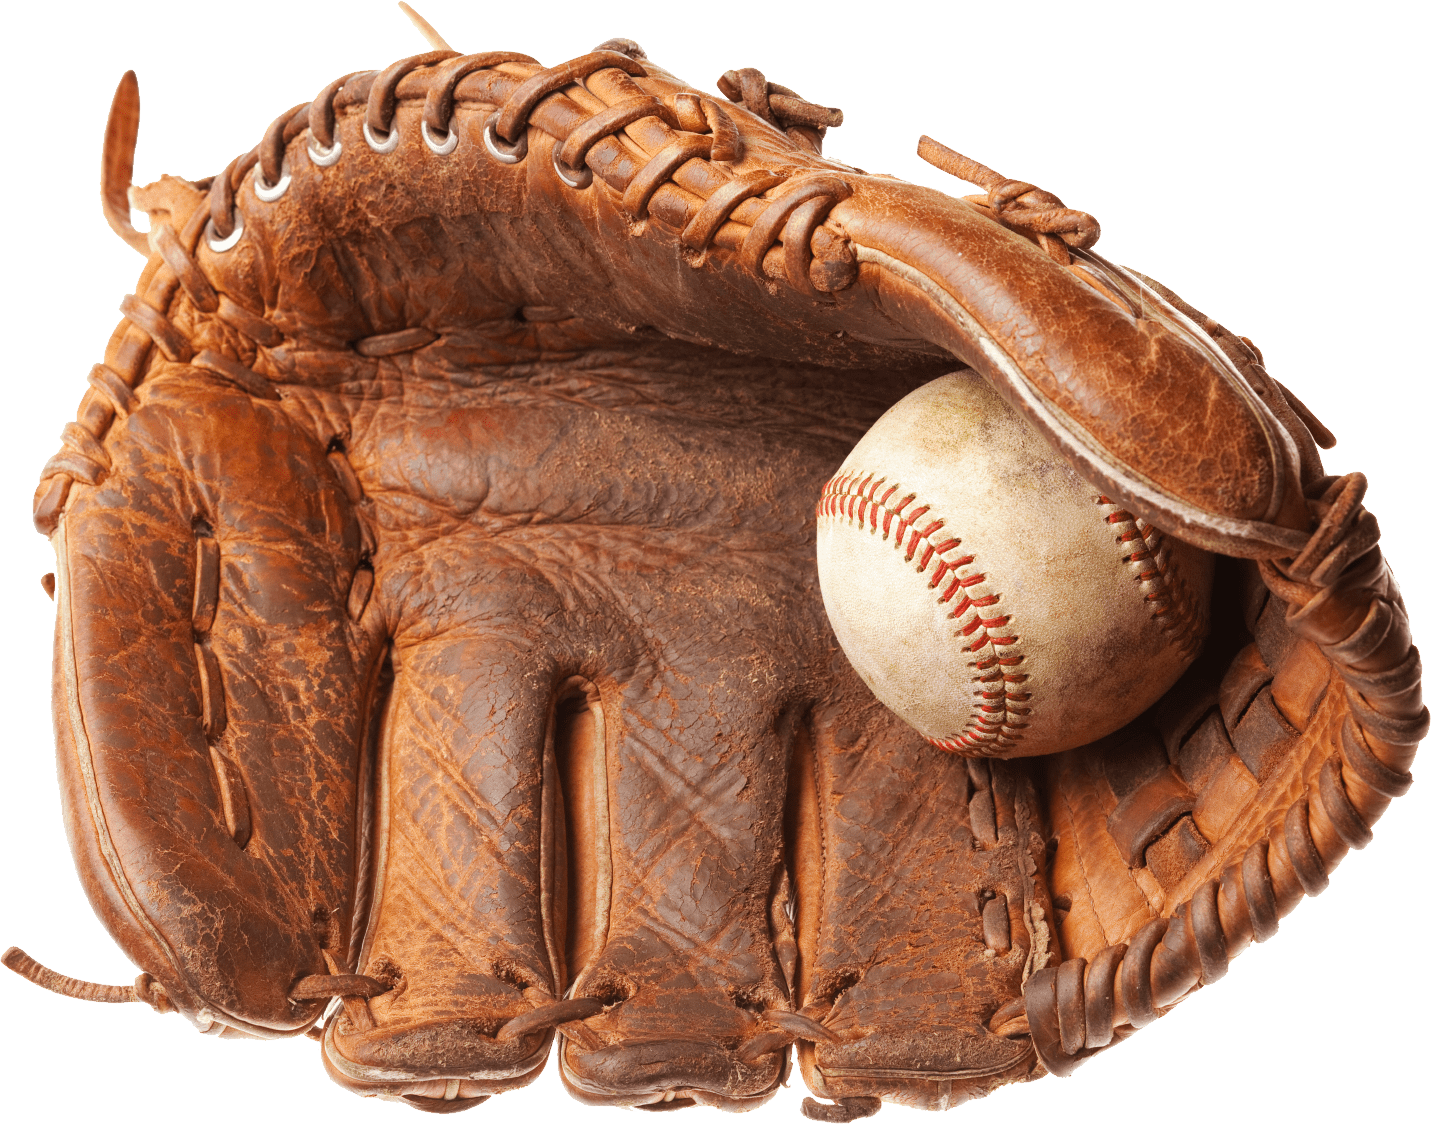 Clipart of baseball glove png transparent library Vintage Baseball Glove transparent PNG - StickPNG png transparent library